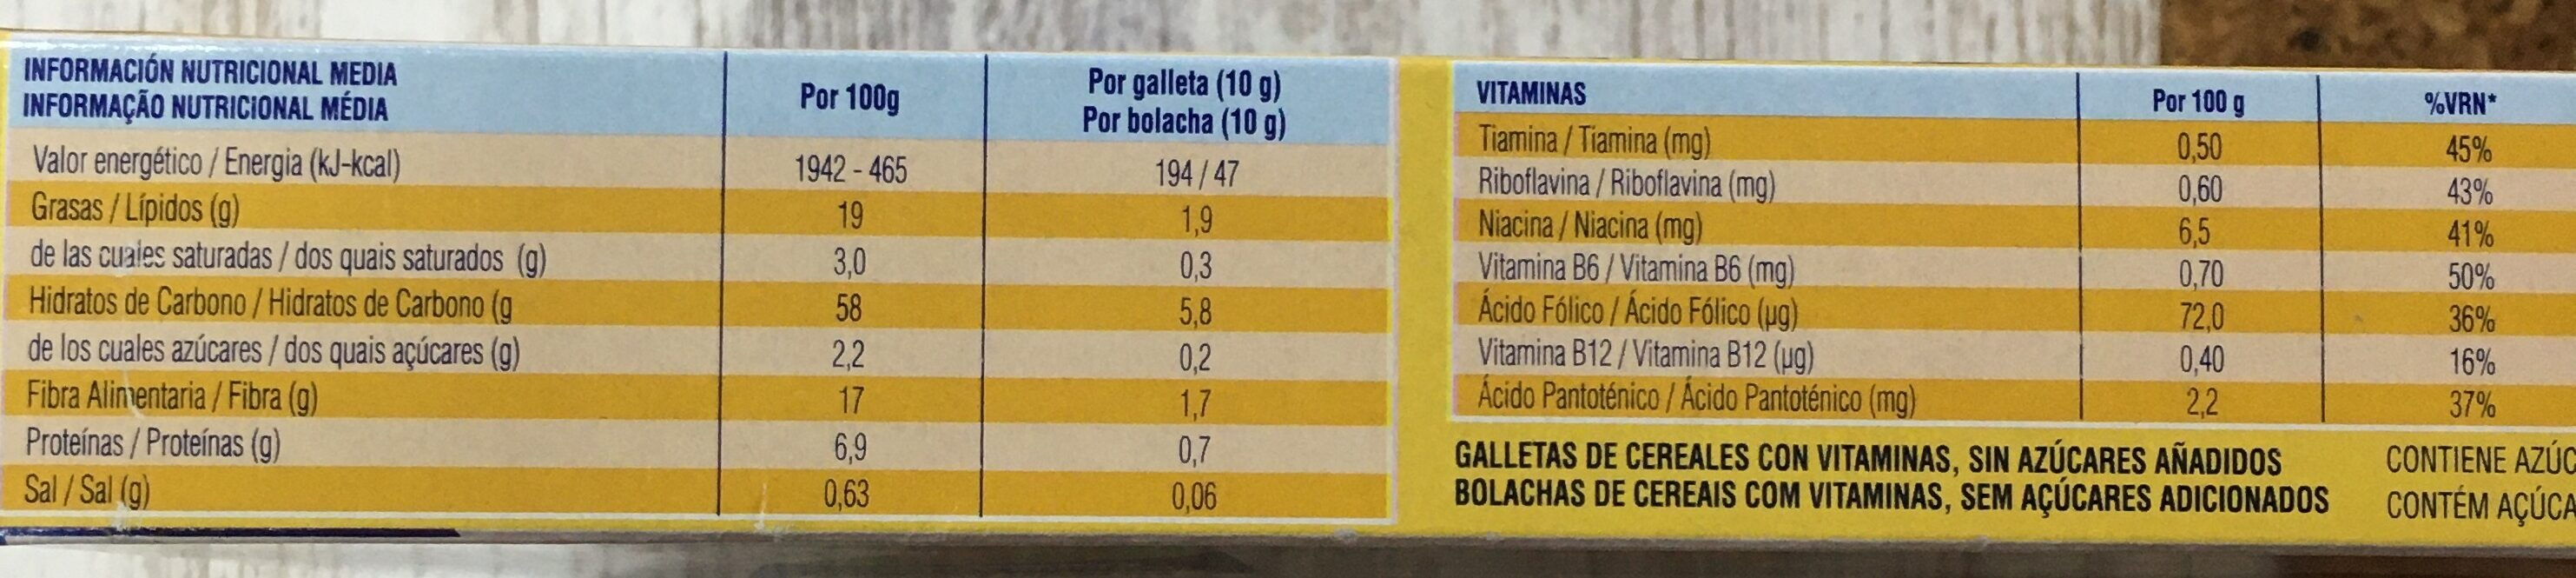 Cookienss Dinosaurus galletas de cereales con vitaminas - Nutrition facts